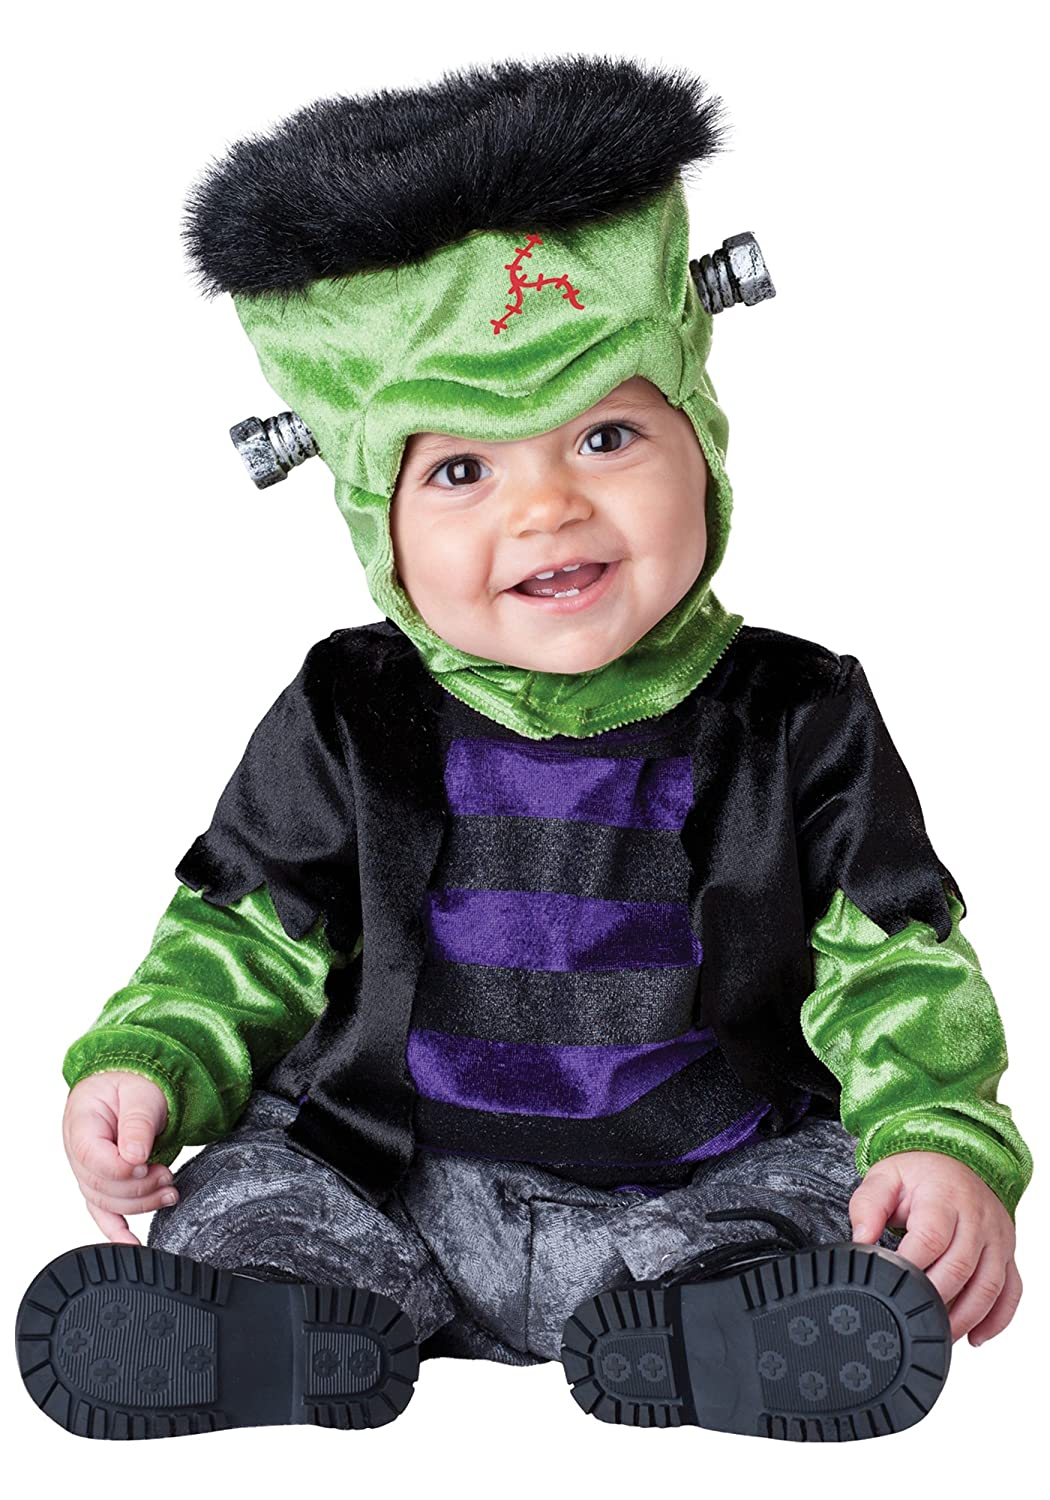 Medium (12  18 months) Infant Monster Boo Costume Medium (12  18 months)